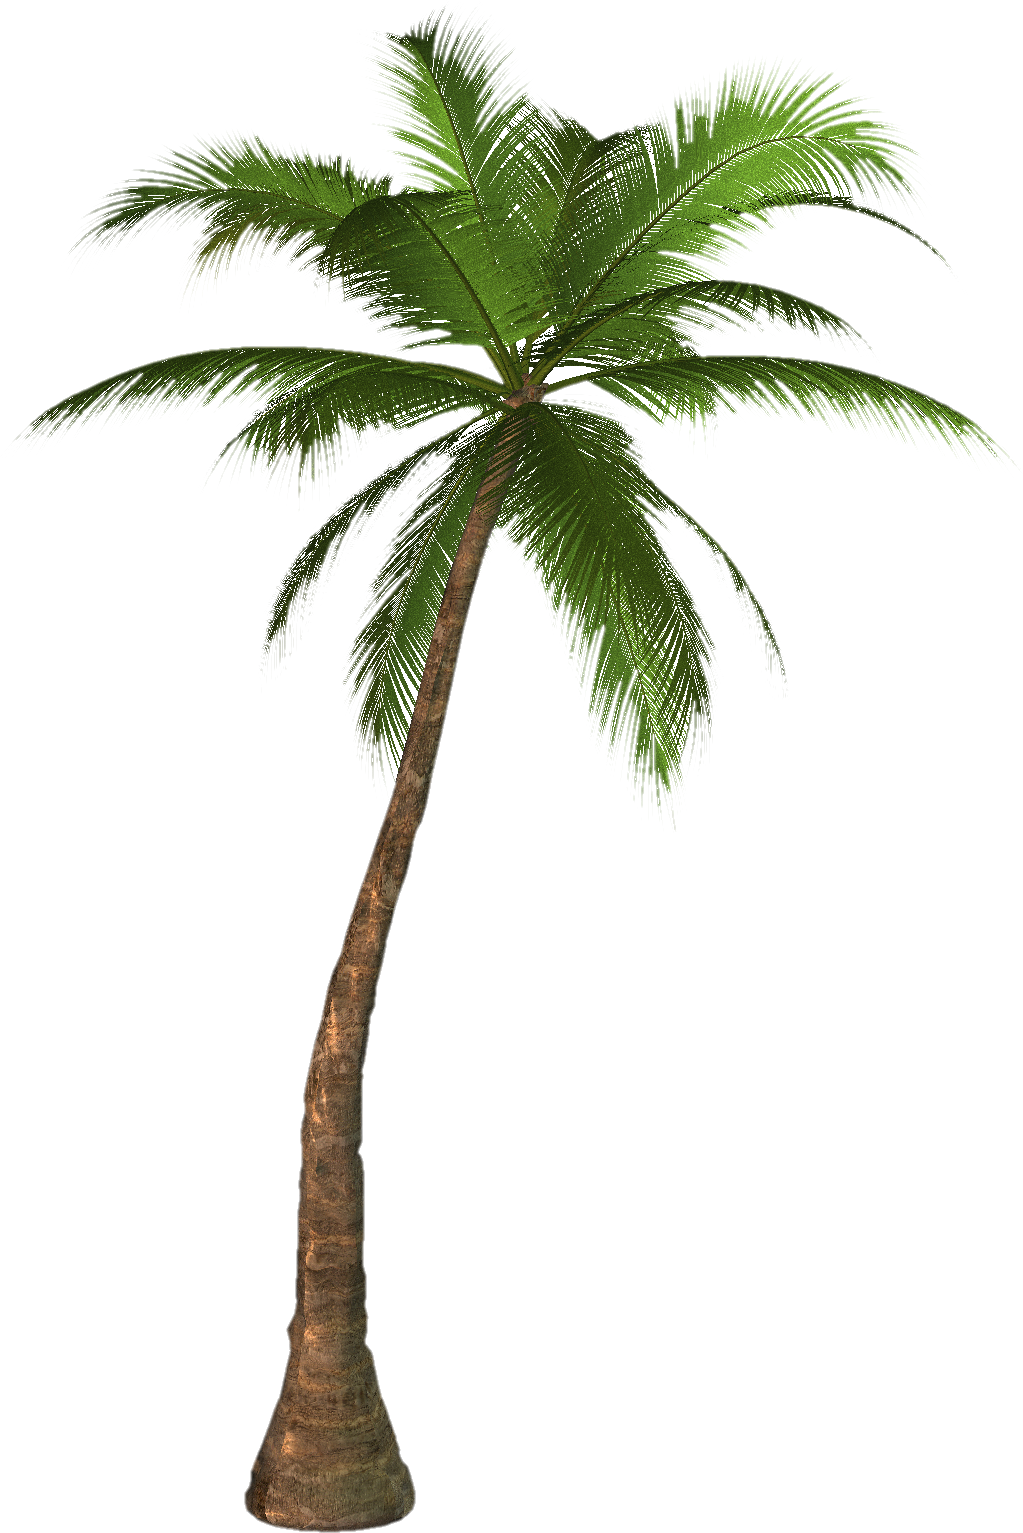 Transparent Palm Tree Background image #31881